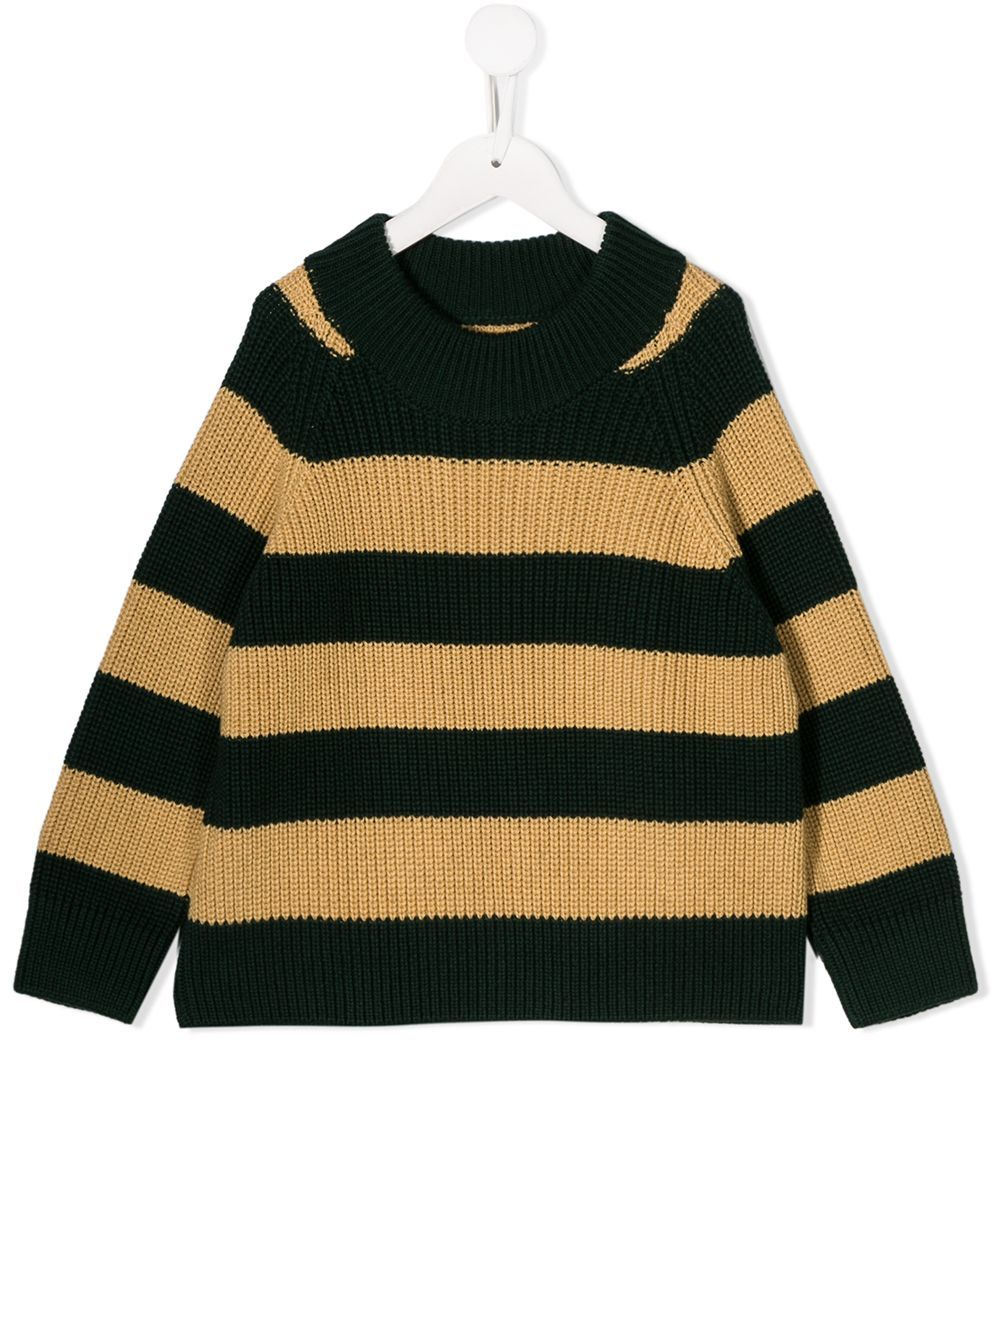 Tiny Cottons striped chunky knit jumper - Green